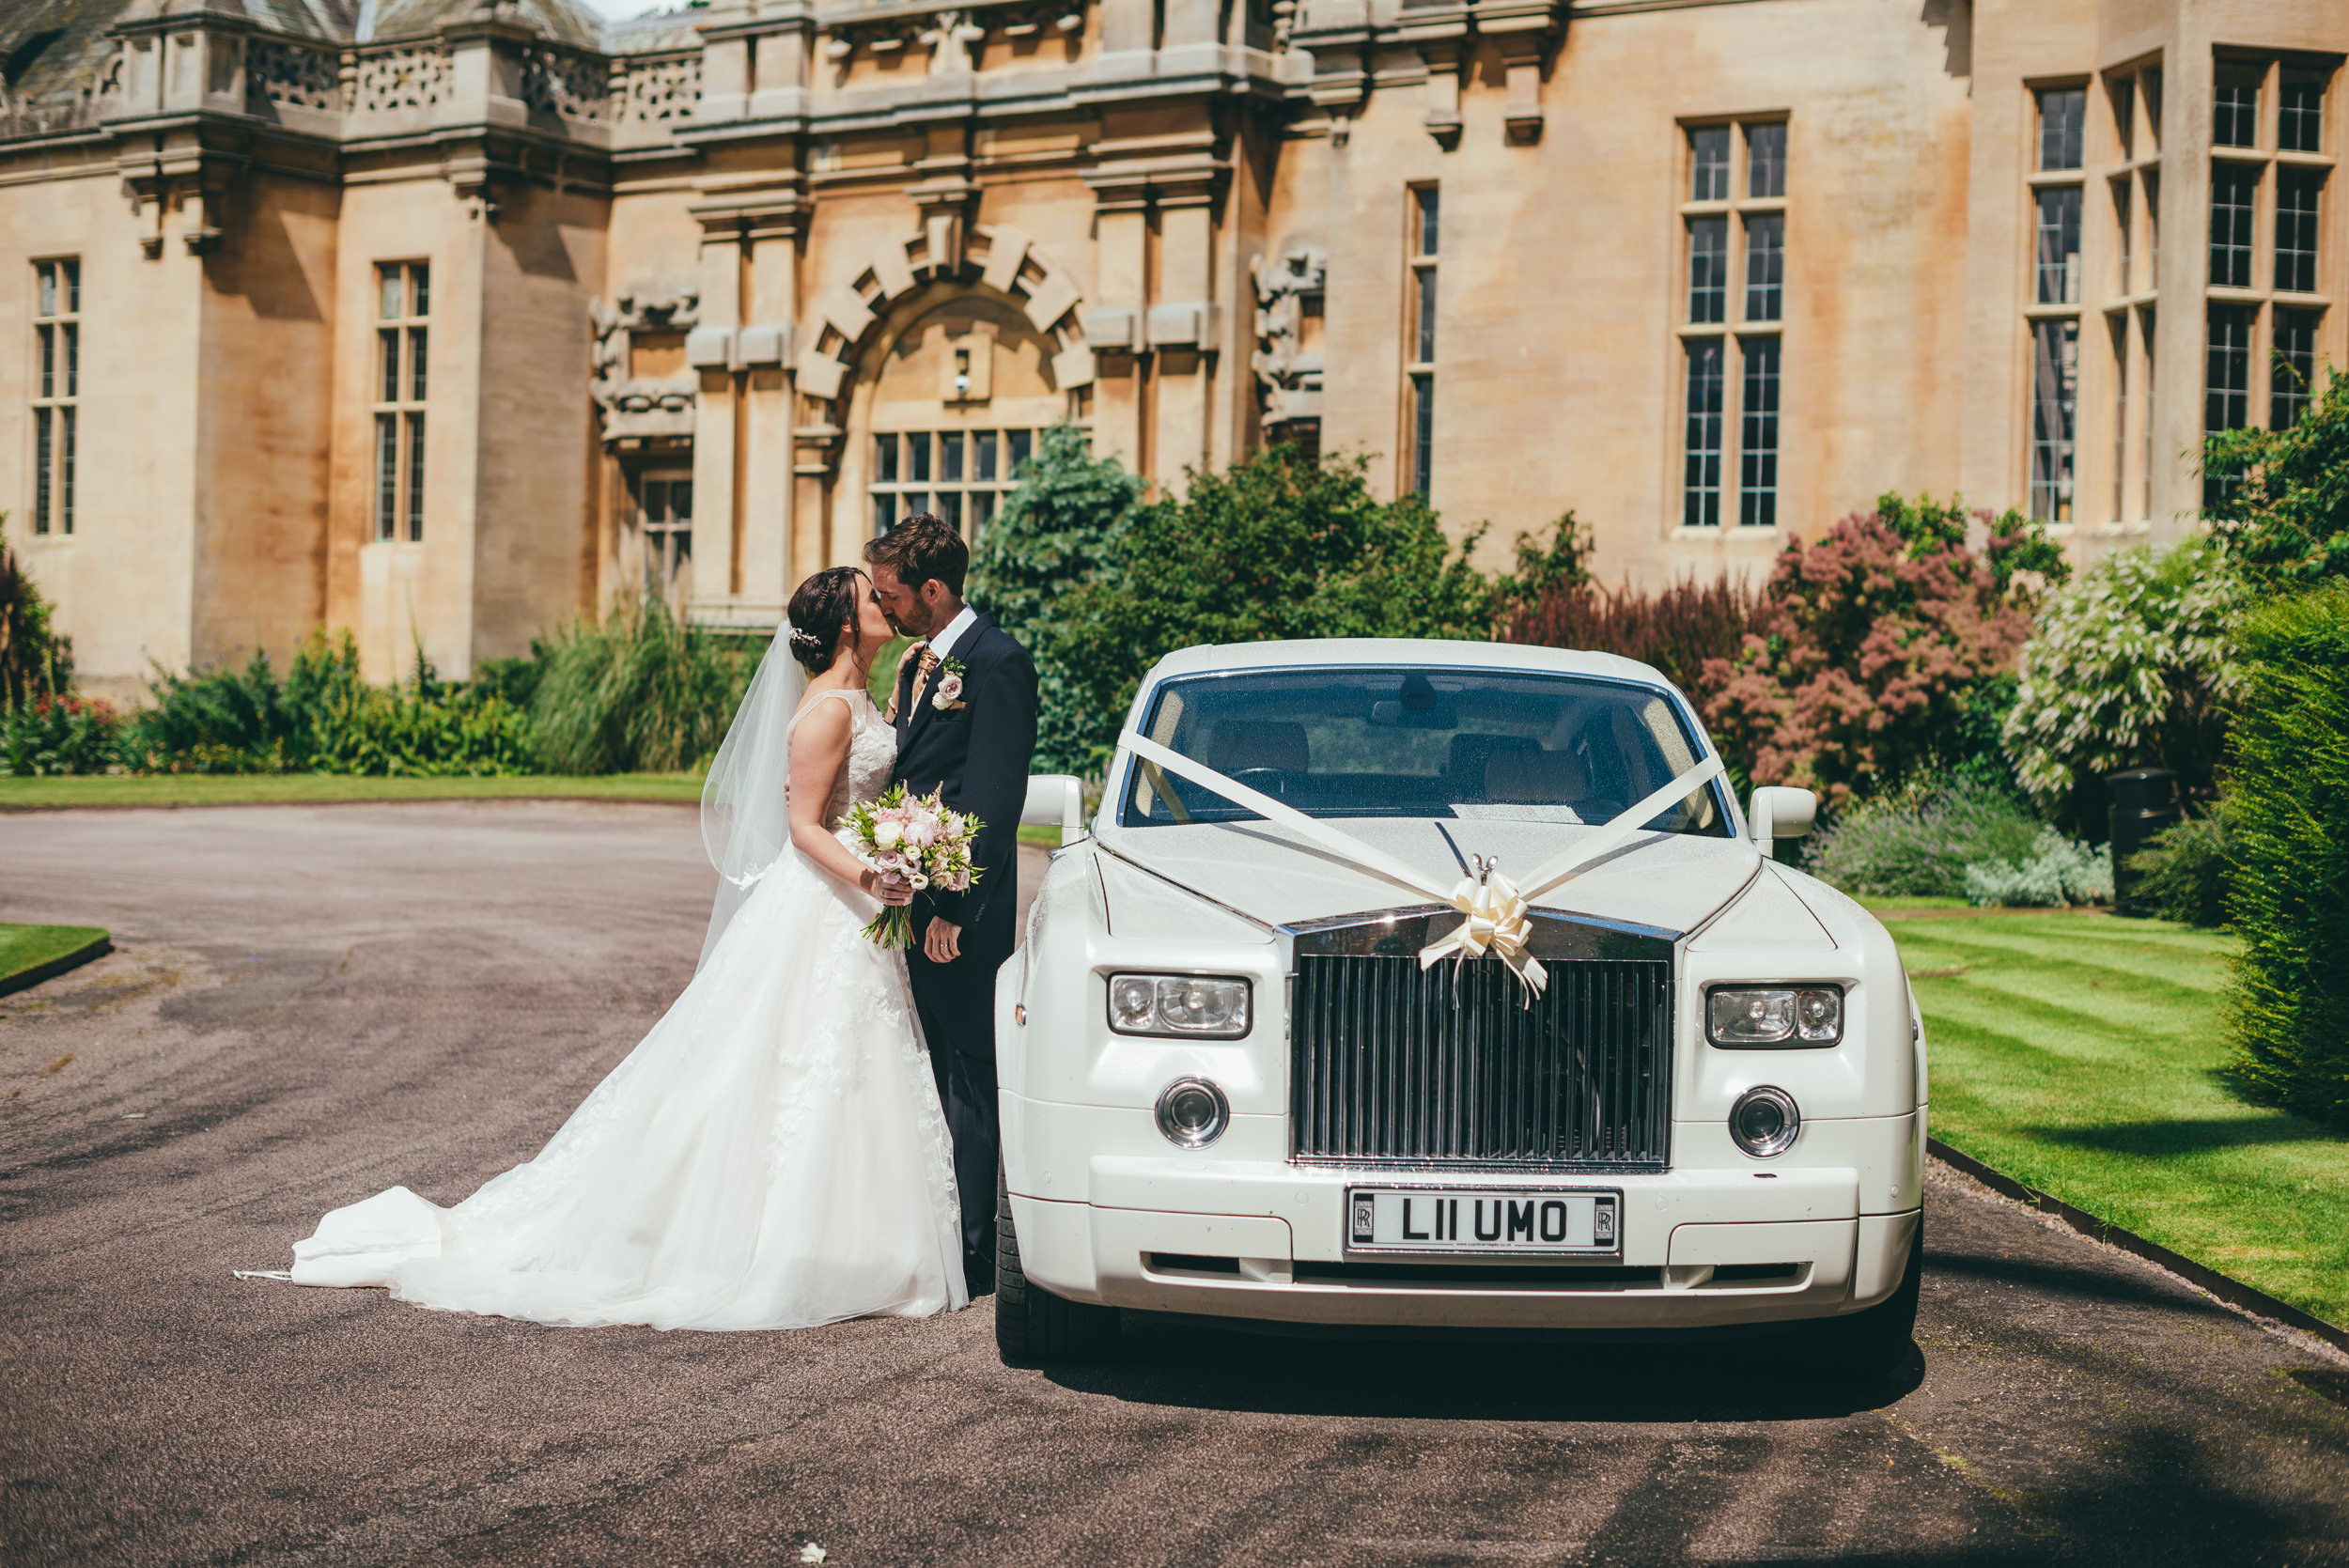 Bride and groom kissing by their Rolls royce wedding car at Harlaxton Manor